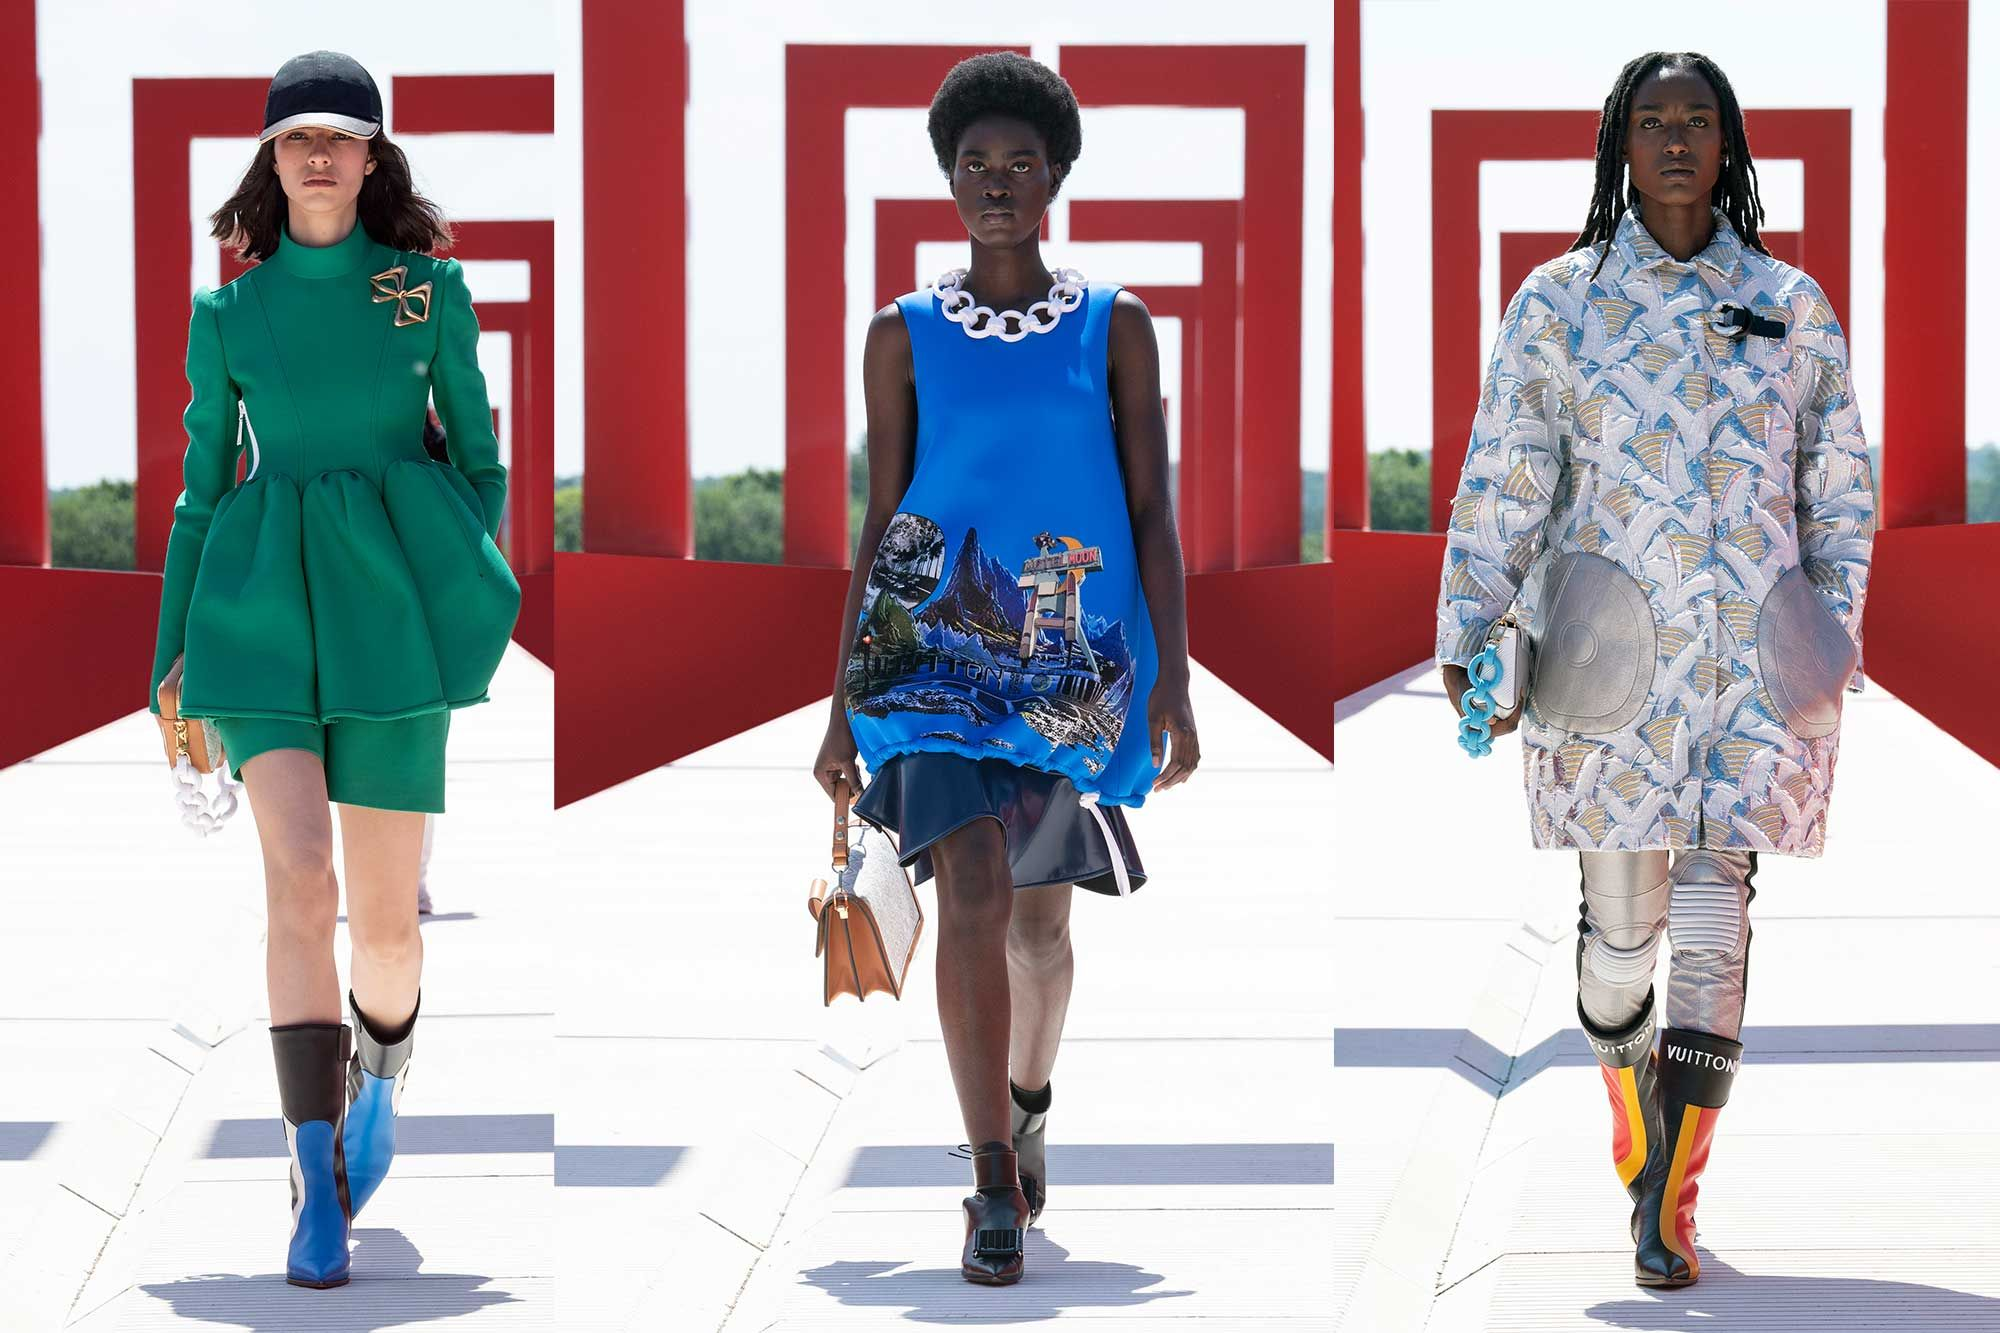 Louis Vuitton's Futuristic Cruise 2022: 5 Things To Know About The Show